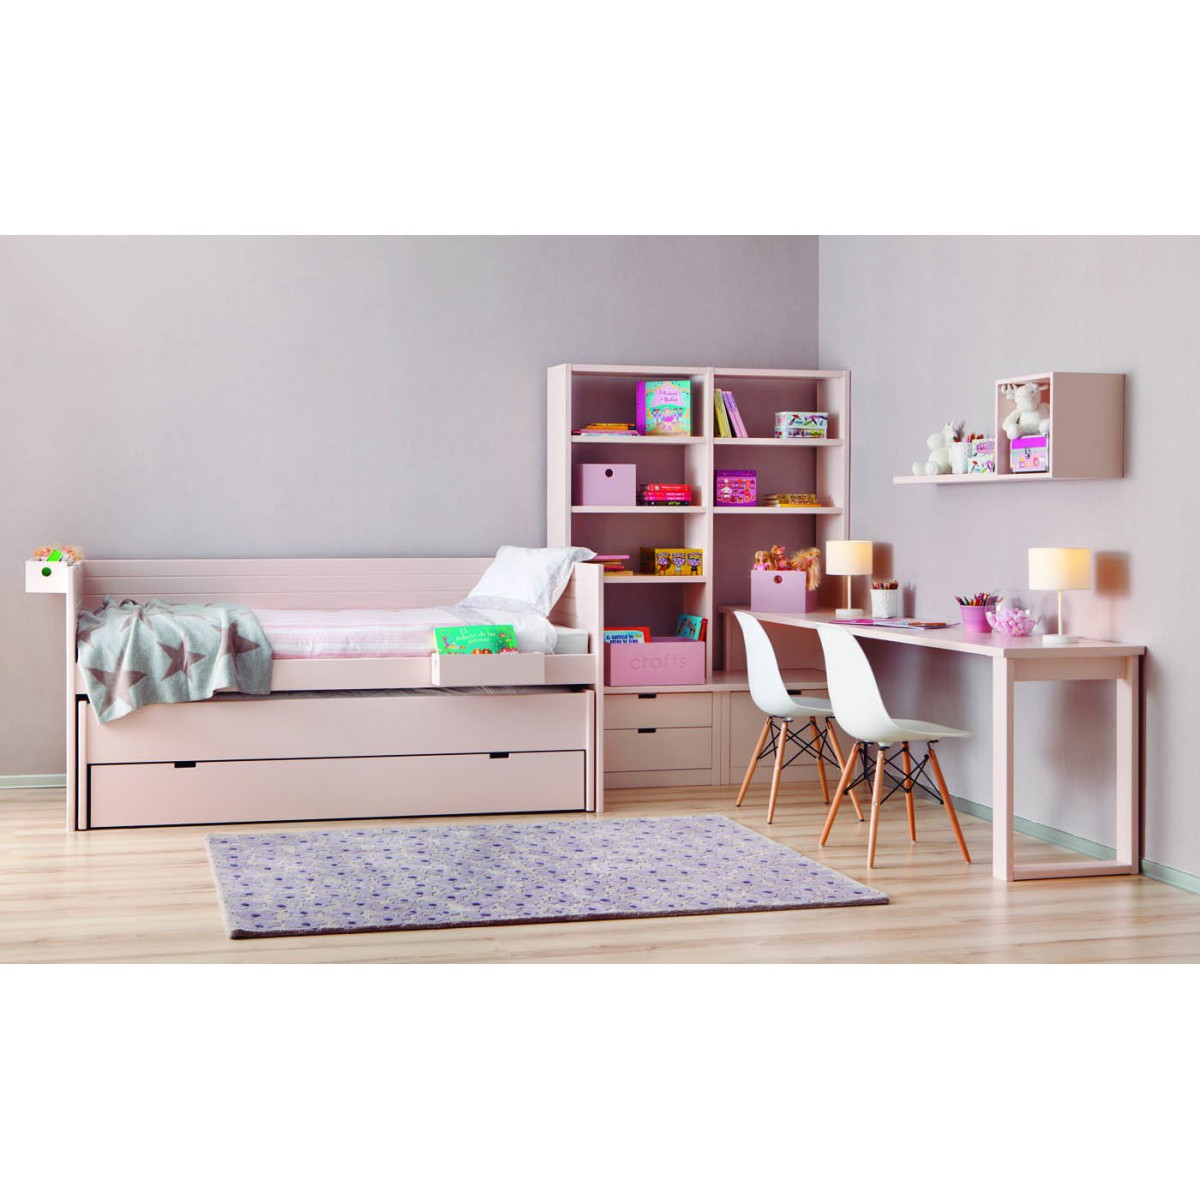 chambre d 39 exception pour enfants asoral en vente chez ksl. Black Bedroom Furniture Sets. Home Design Ideas